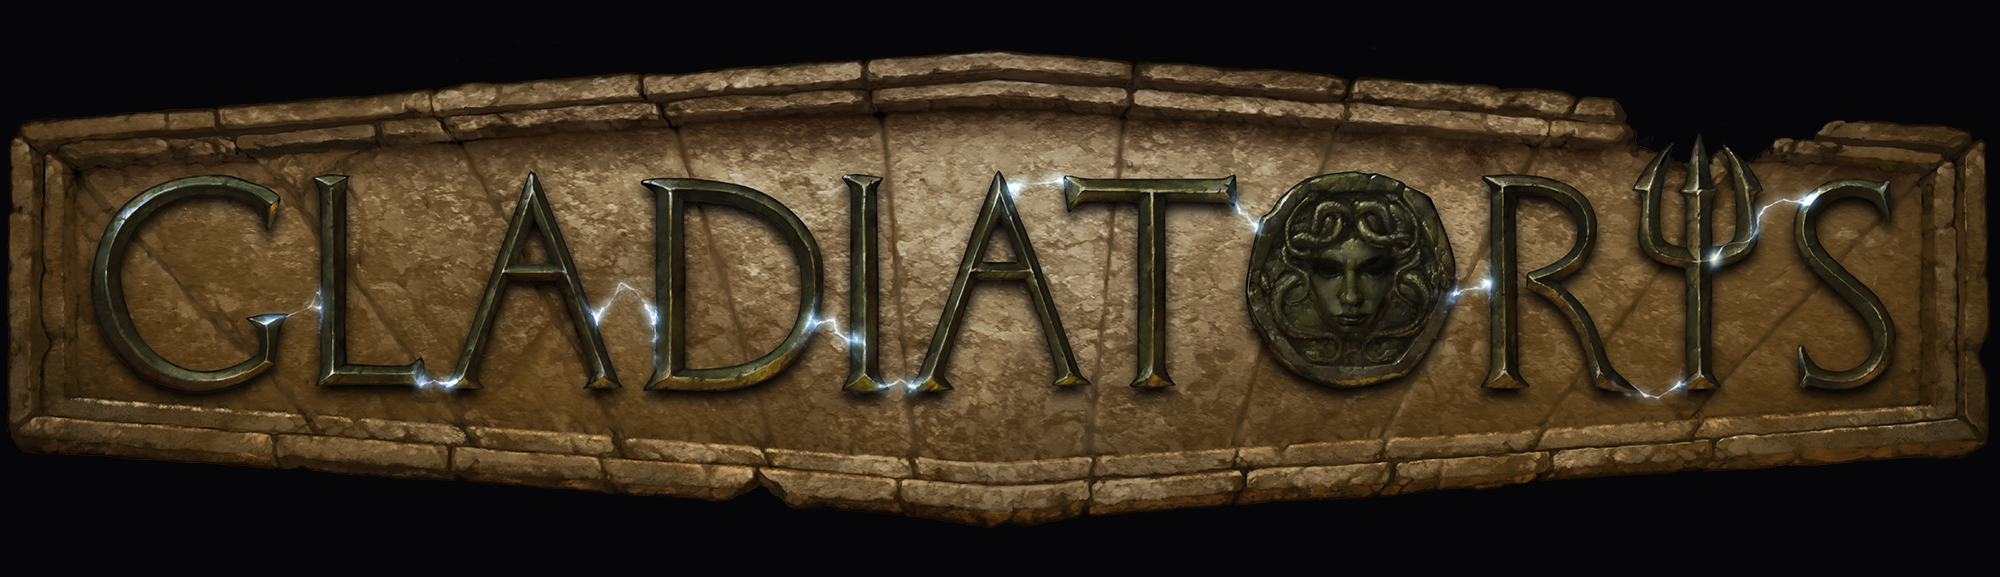 Gladiatoris - Logo cabecera